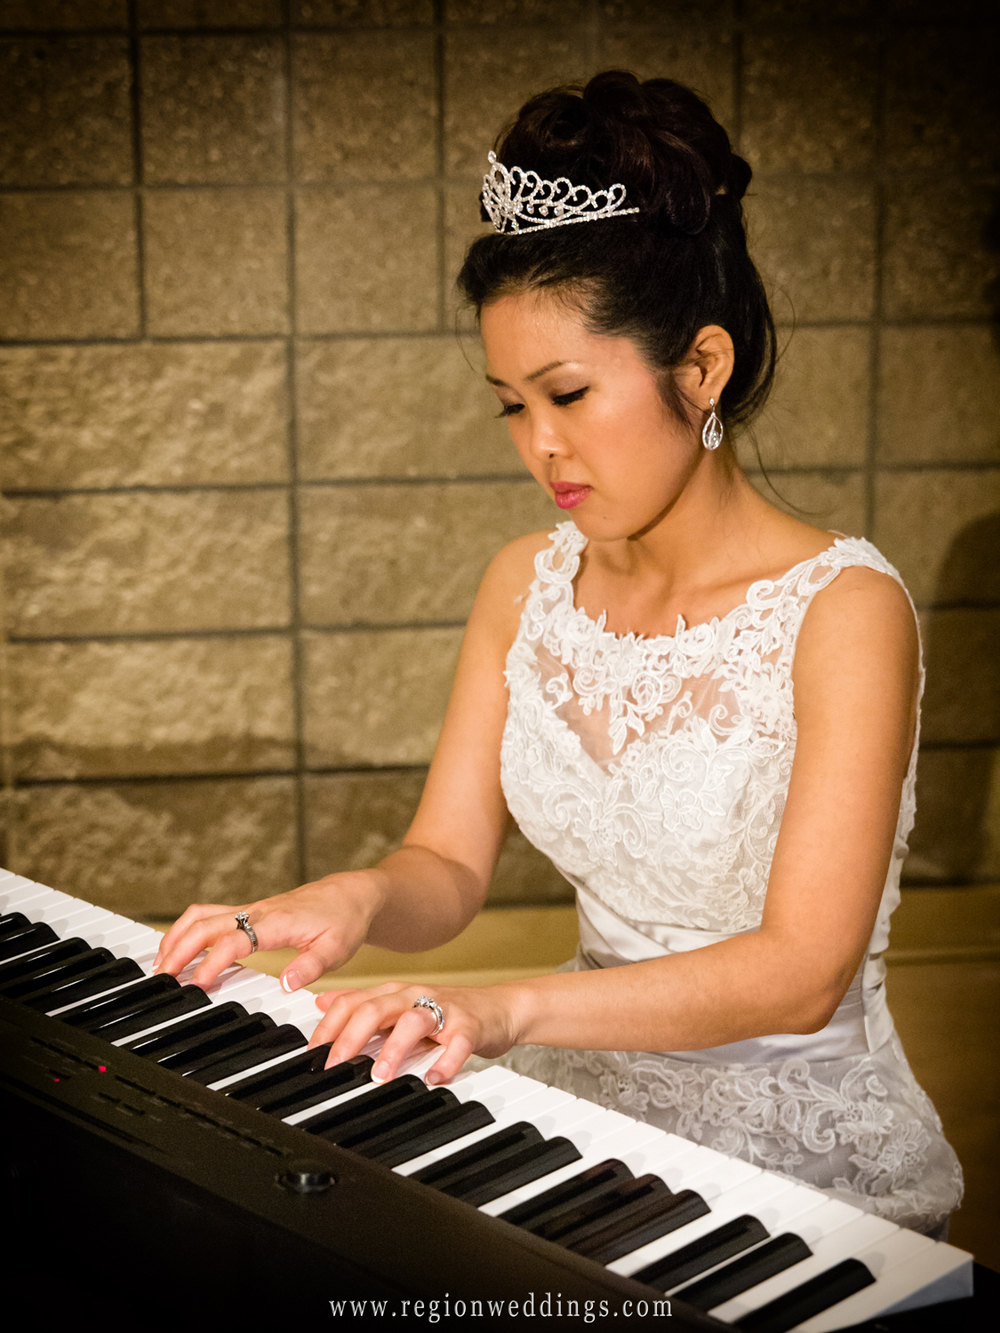 The bride plays piano during dinner hour at her wedding reception at Trinity Lutheran Family Center in Merrillville.